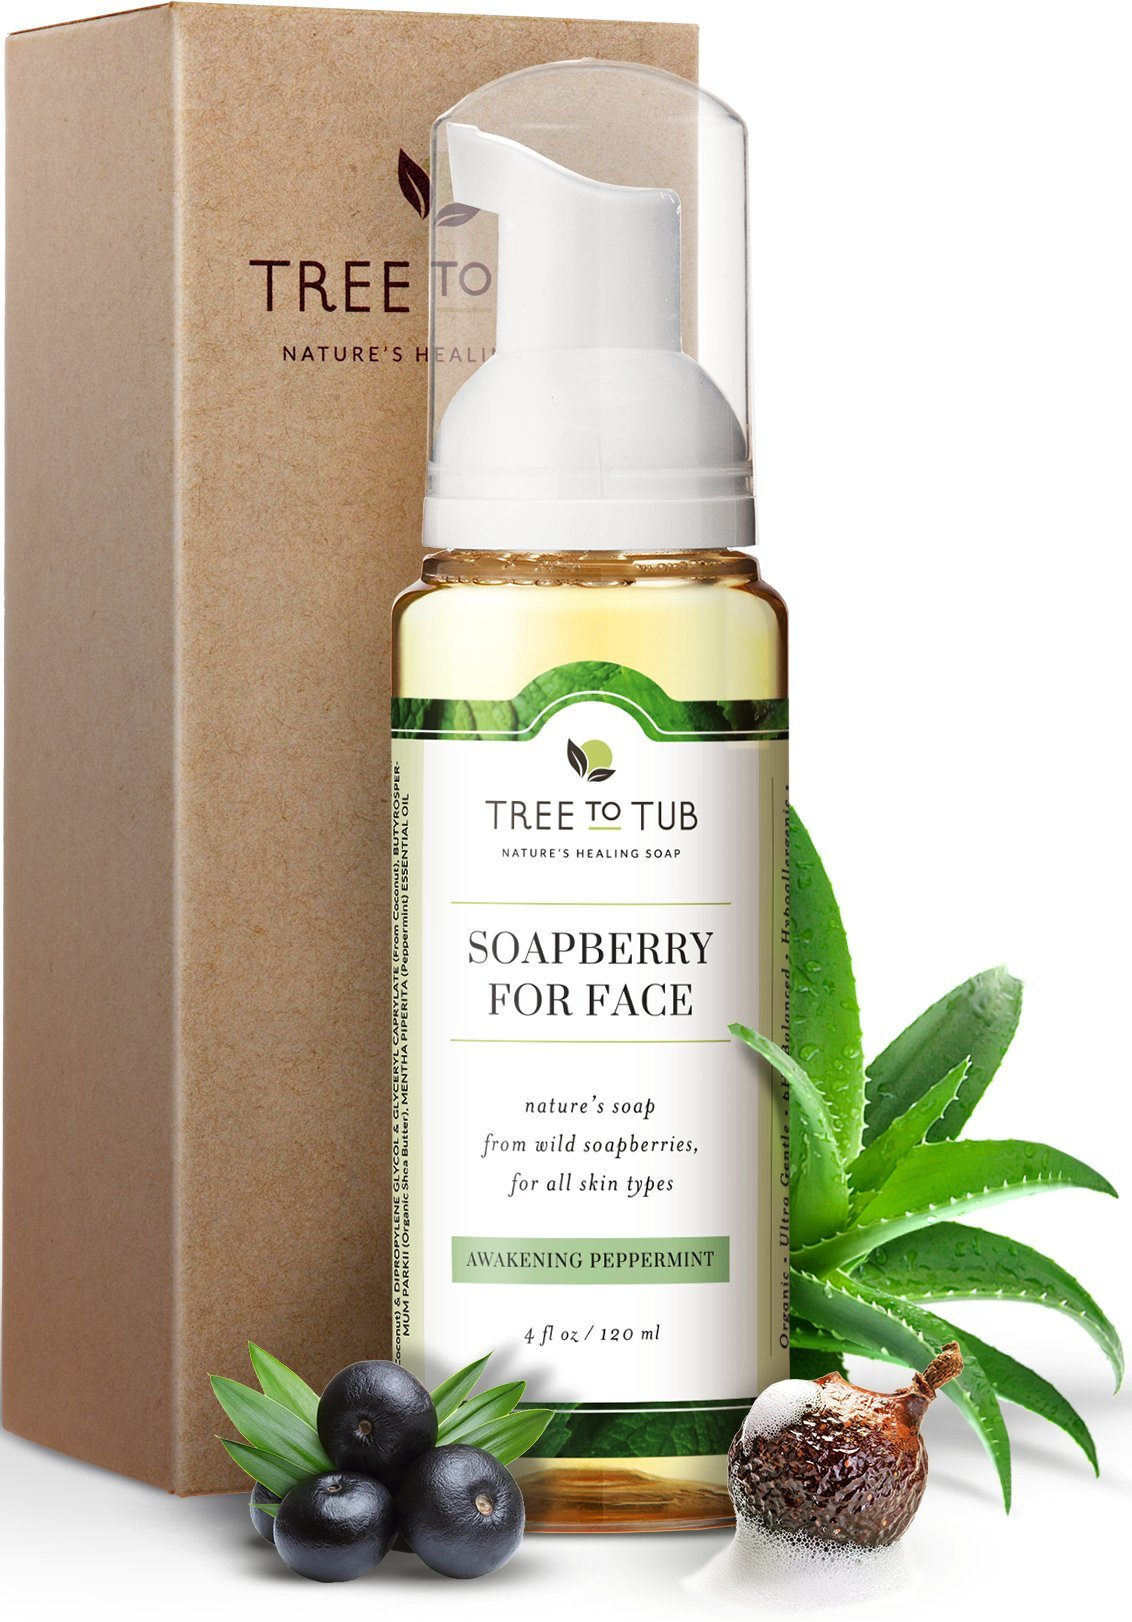 Gentle, Acne Face Wash for Oily Skin by Tree To Tub - pH 5.5 Balanced Refreshing Peppermint Foaming Cleanser for Sensitive Skin. Women and Mens Face Wash from Wild Soapberries, Organic Aloe Vera 4 oz